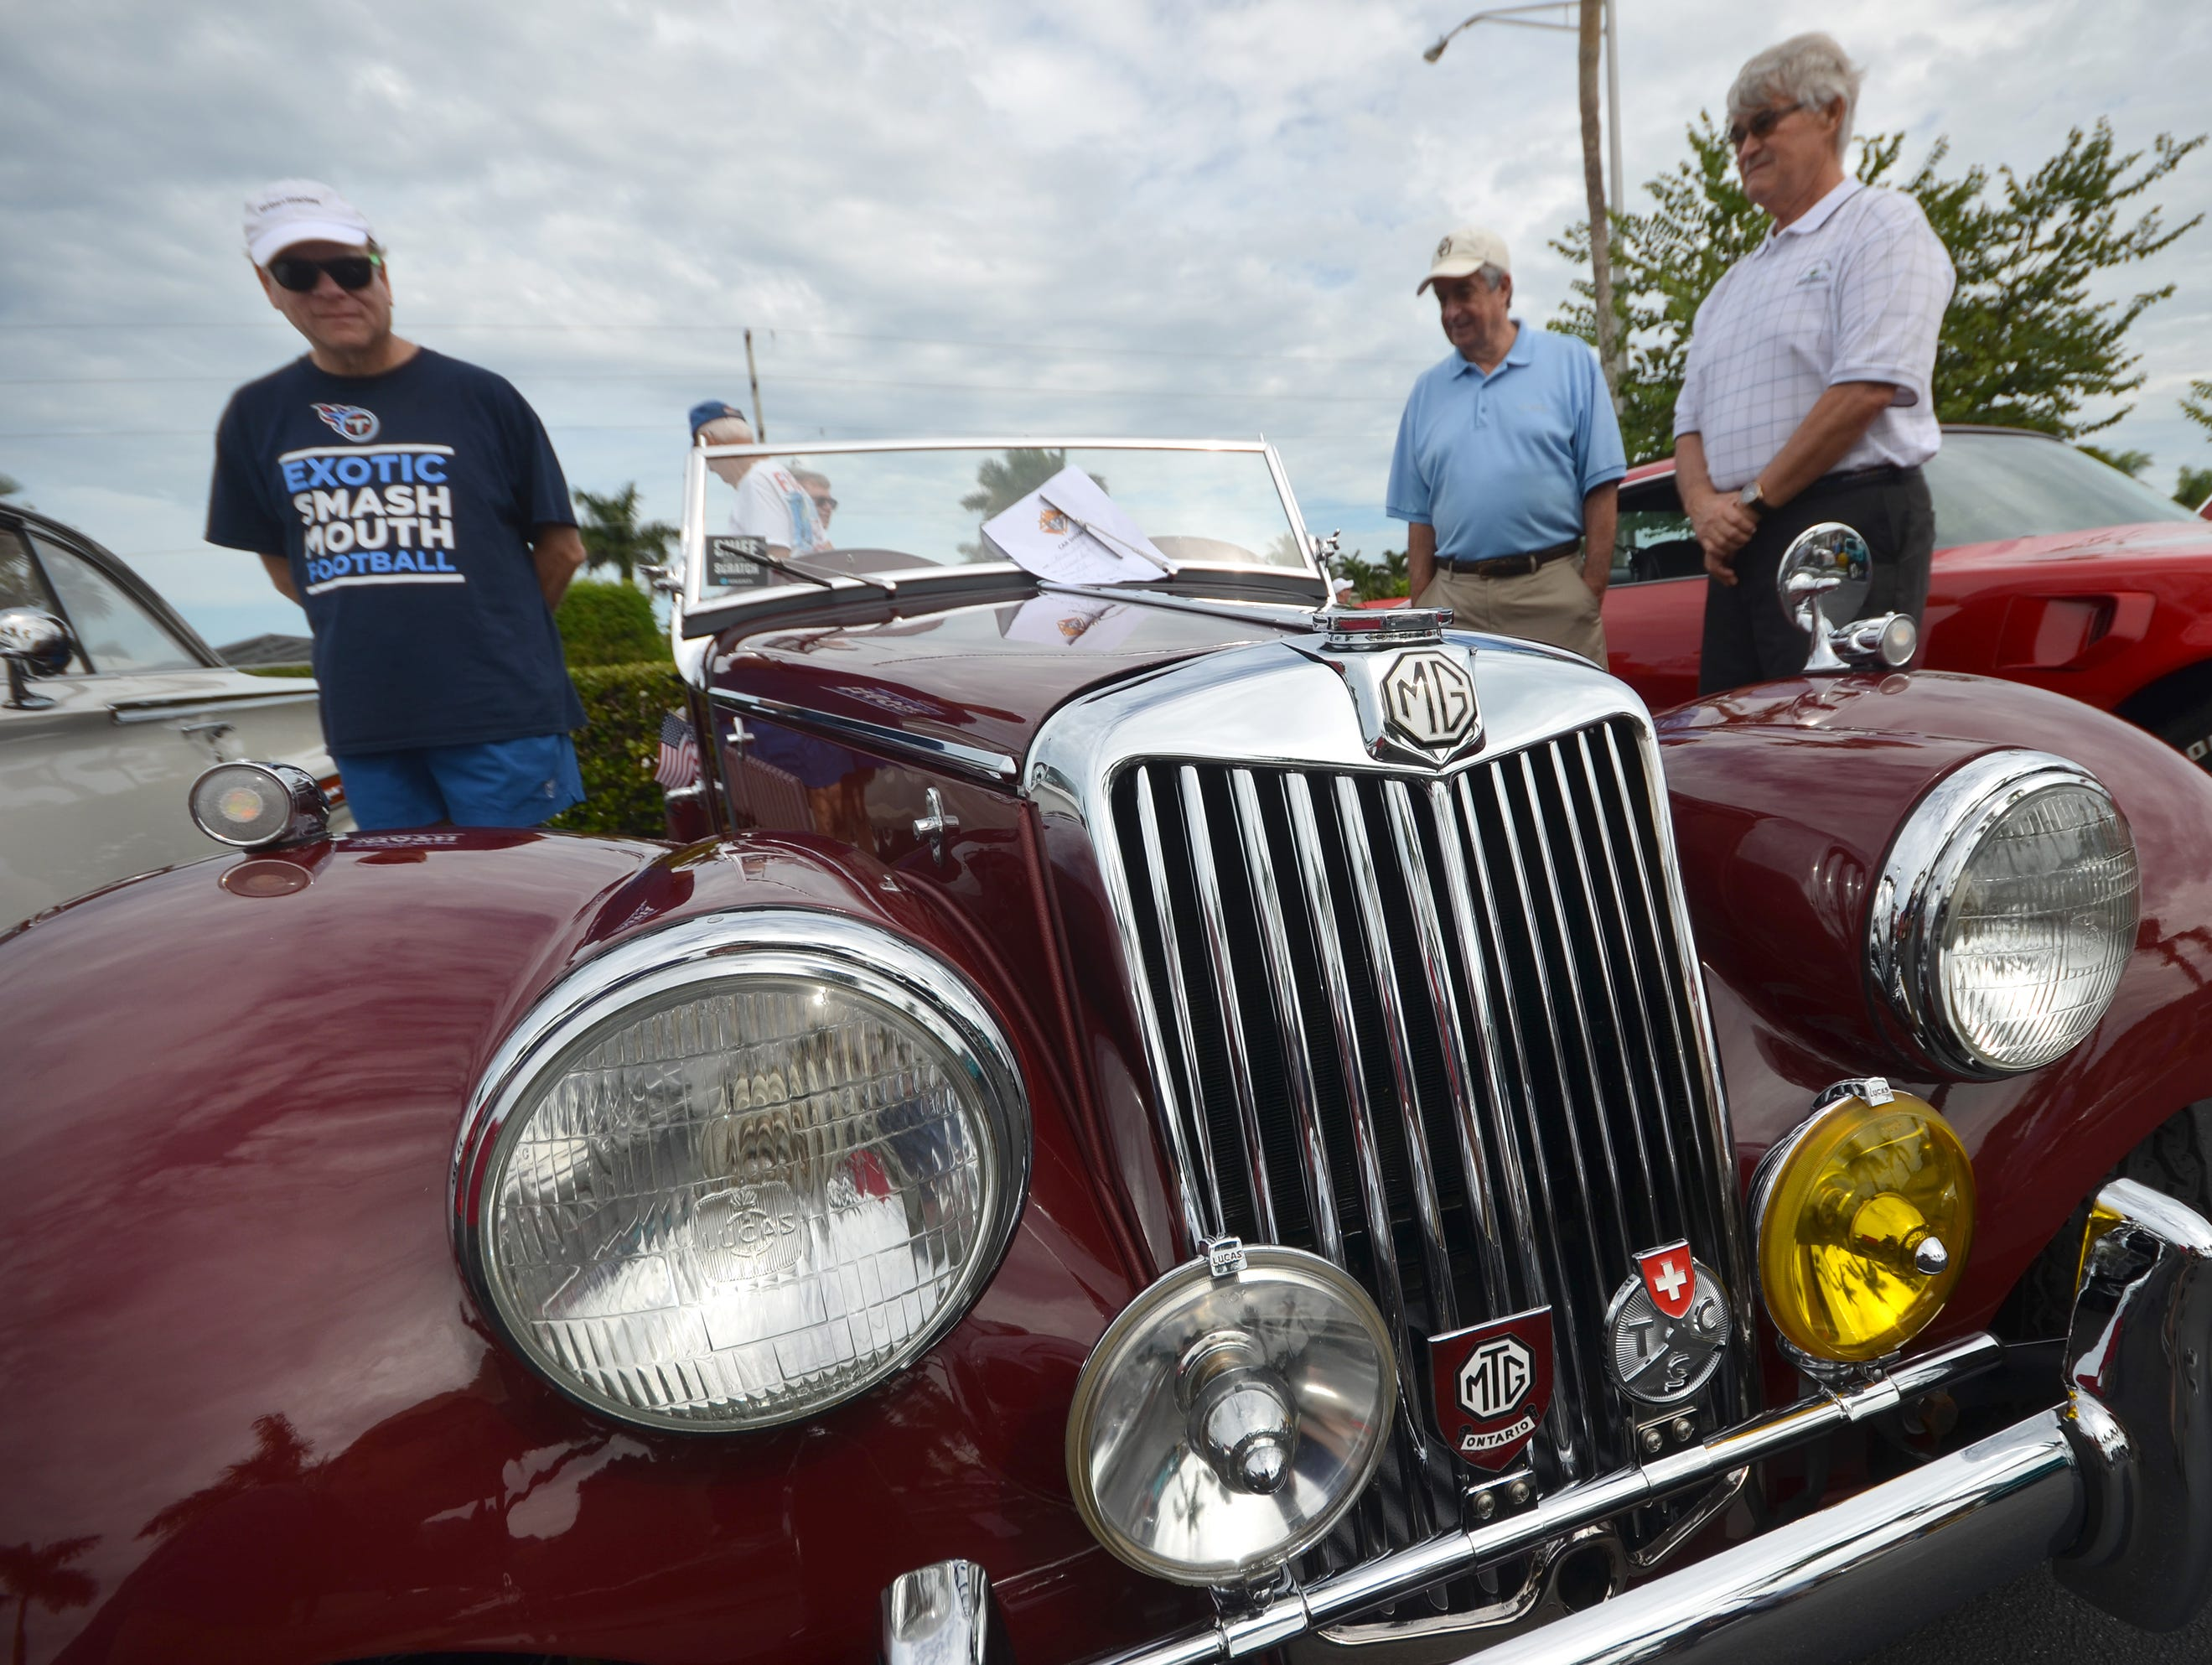 Jack Keery's 1954 MG roadster sports an exotic front end. The Marco Island Knights of Columbus held their inaugural car show Saturday in the parking lot at San Marco Catholic Church.